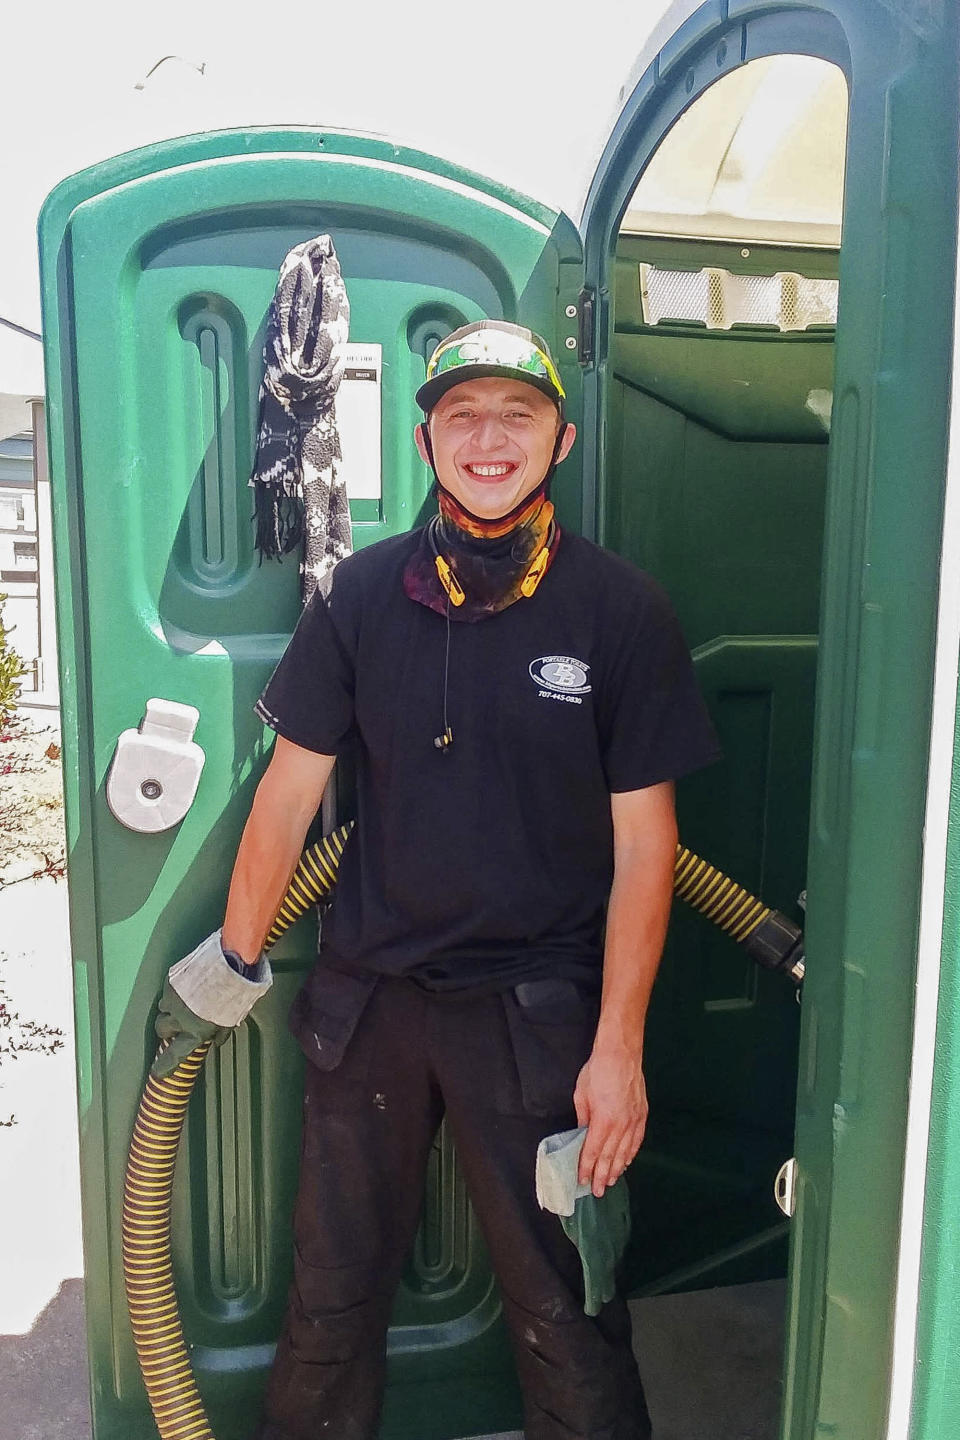 Donnie Settles, 27, stands near a portable toilet on July 14, 2020, which he services for his employer in Arcata, Calif. Settles lived at an emergency tent shelter for two months during COVID-19 while he saved up money for rent. Many homeless people work low-wage essential jobs on the front lines of the pandemic, putting them at higher risk of catching and possibly transmitting the virus. Many who work with these communities are reluctant to speak about this risk for fear of further stigmatizing homeless people, even though they do the front-line jobs others can avoid. (Robert Peach/Arcata House Partnership and the Howard Center For Investigative Journalism via AP)